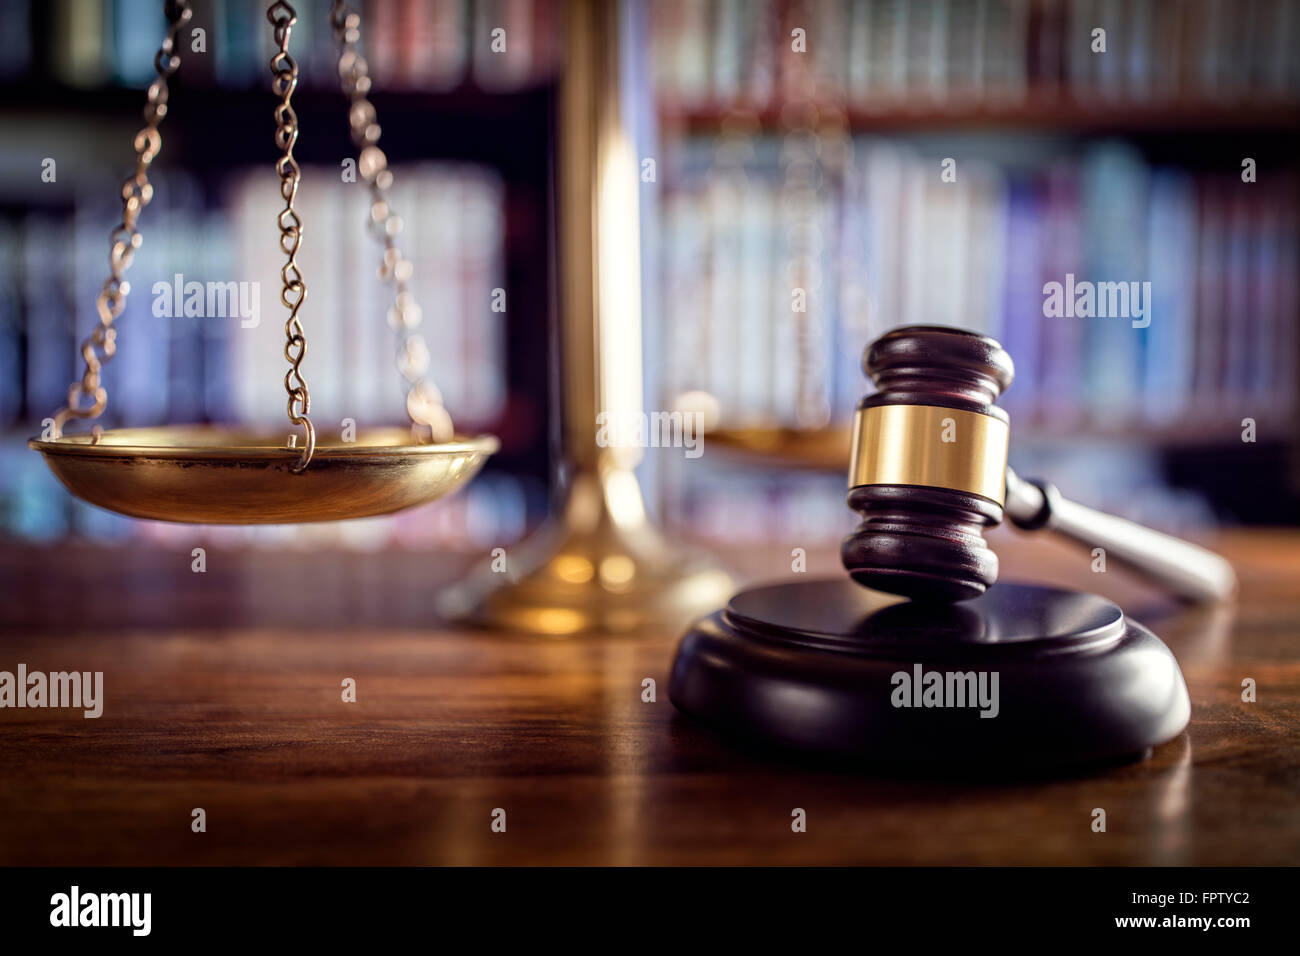 Gavel, scales of justice and law books - Stock Image